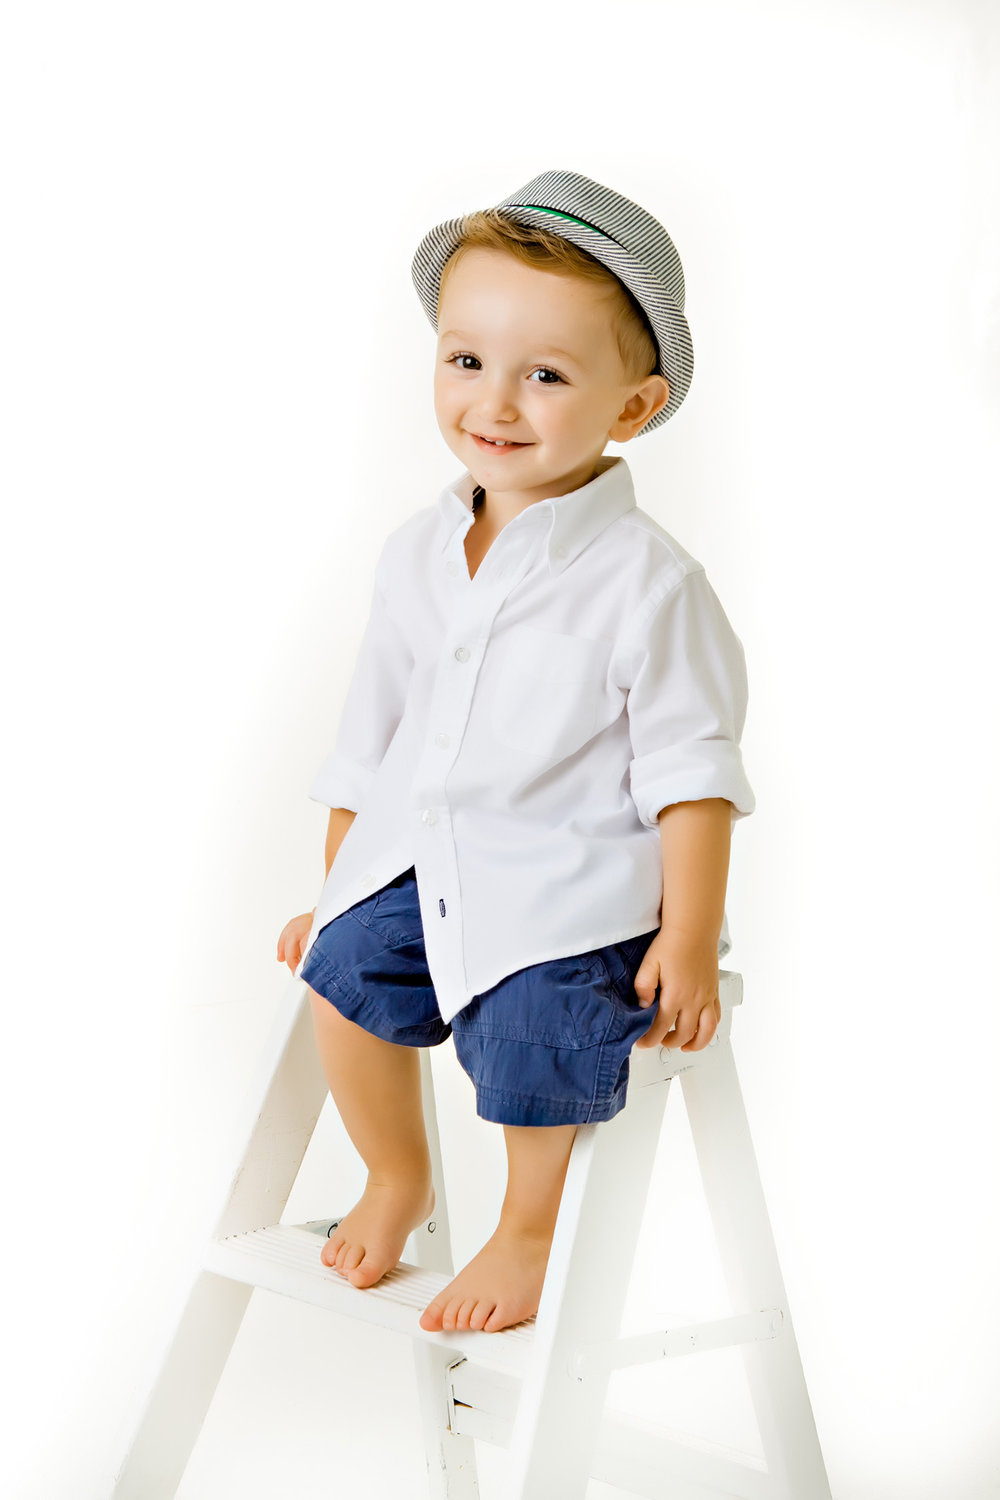 Portrait of a young boy sitting on a ladder on a white background